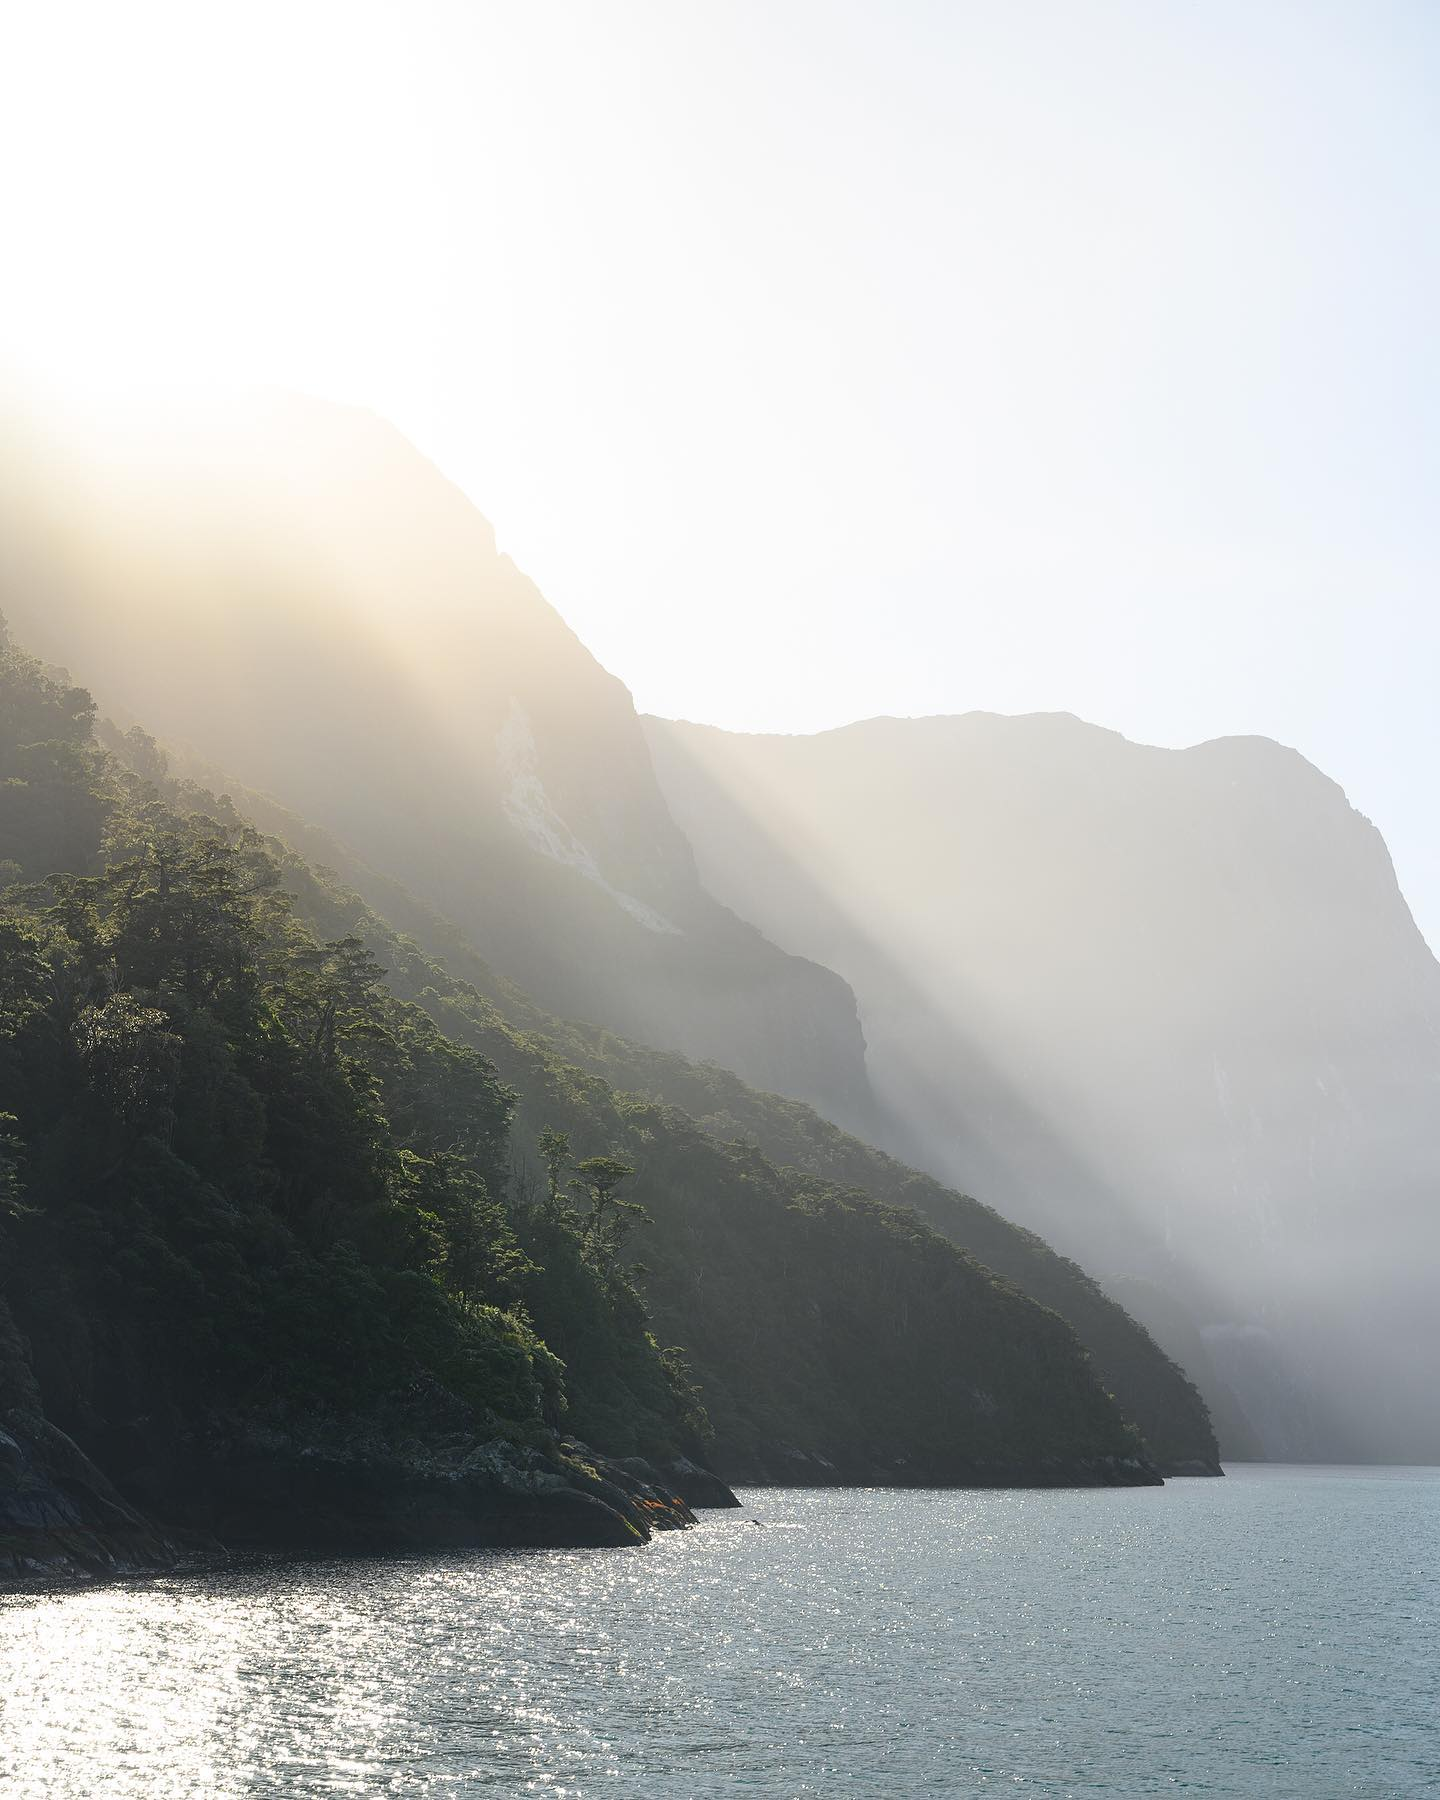 Sunrise over Milford Sound 🌄  This is not the typical weather for this part of New Zealand, but the sunny views were still breathtaking. Morning fog lifting up, sun rays though the mountain peaks, dolphins and seals swimming by - nothing short of perfection 👌 . . . . . #lovefiordland #milfordsound #milfordsounds #milfordsoundcruise #milfordsoundnz #tasmansea #fiordlandnationalpark #fiordlandnz #fiordlands #fiord #fiords #dosomethingnewnz #airnzshareme #fiordlandbeyondbelief #destinationnz #ig_newzealand #nouvellezelande #nikonnz #nzsummer #onmountainnz #raw_australia_nz #raw_nz #realrawnz #foggymountains #sunshadow #nznature #nzmustseen #nzsunrise #sunrisemountain